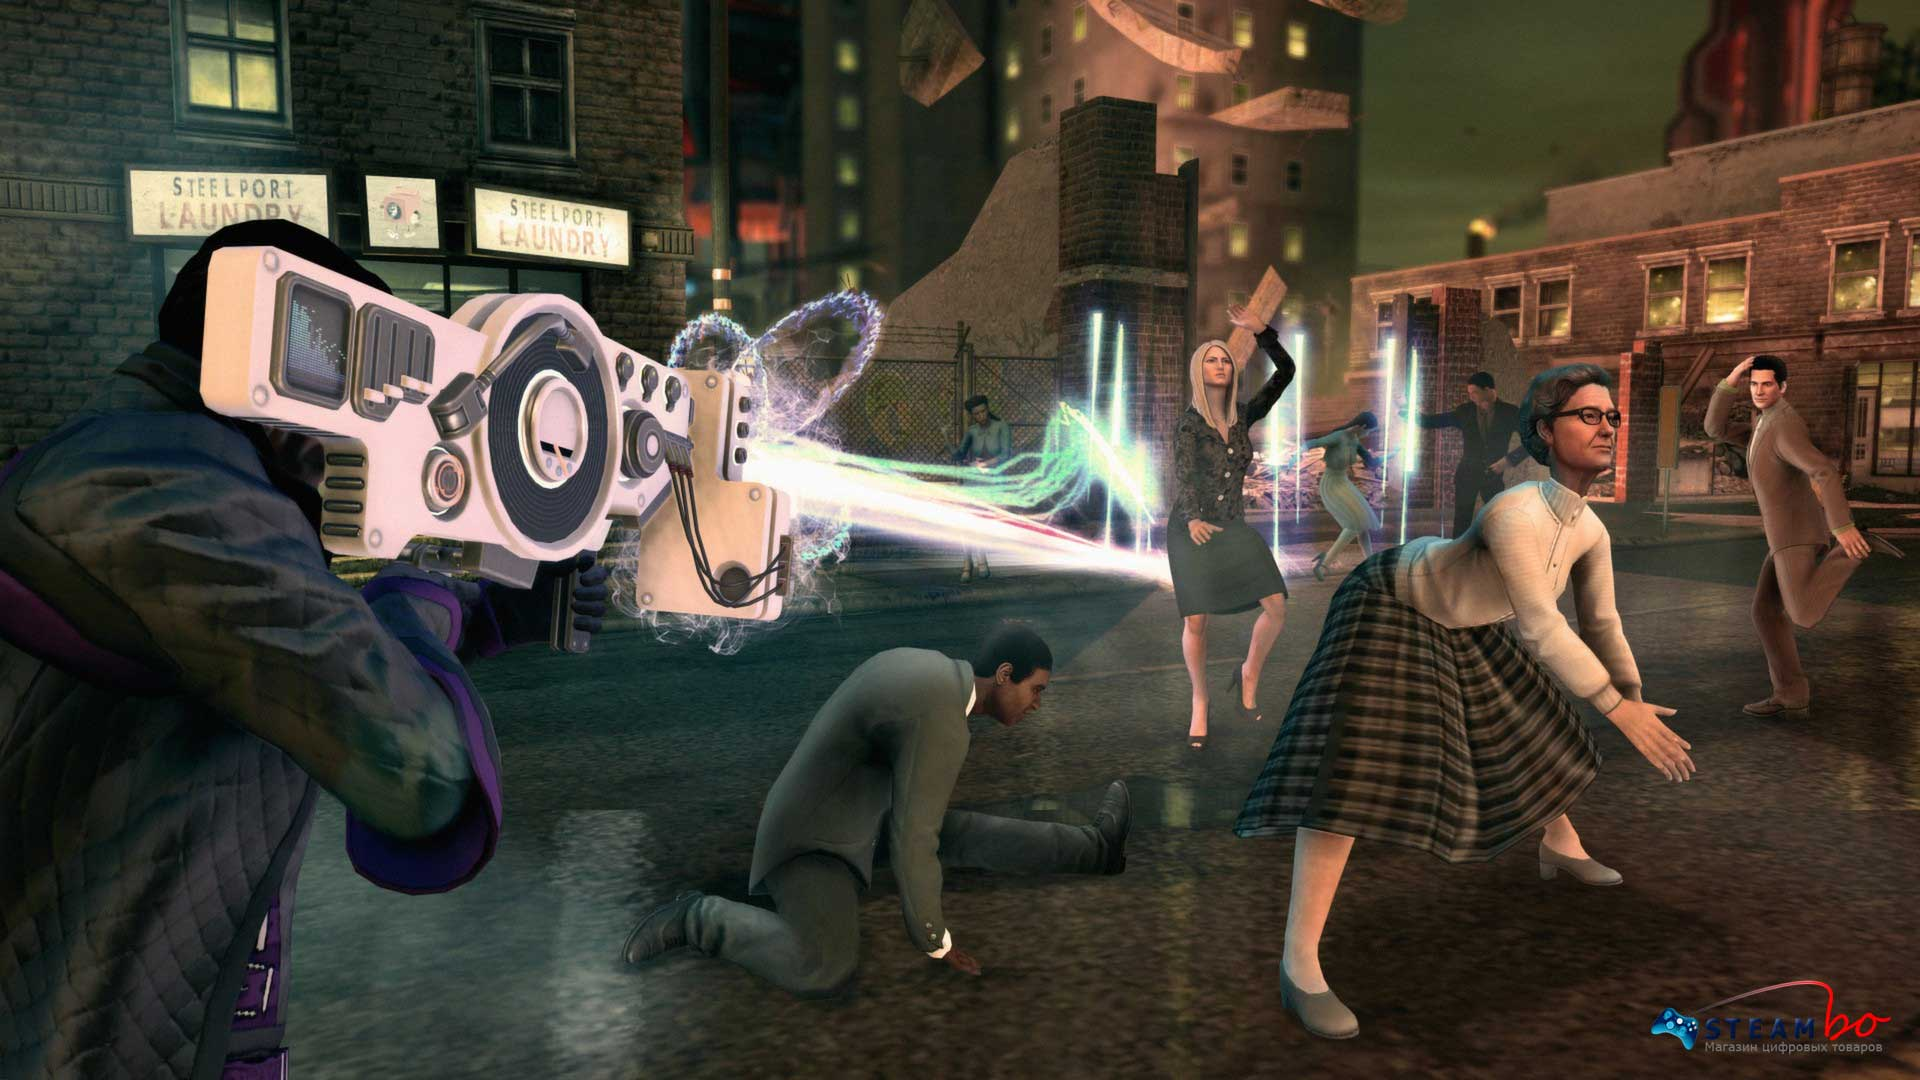 Saints Row IV (Steam Gift / Key)